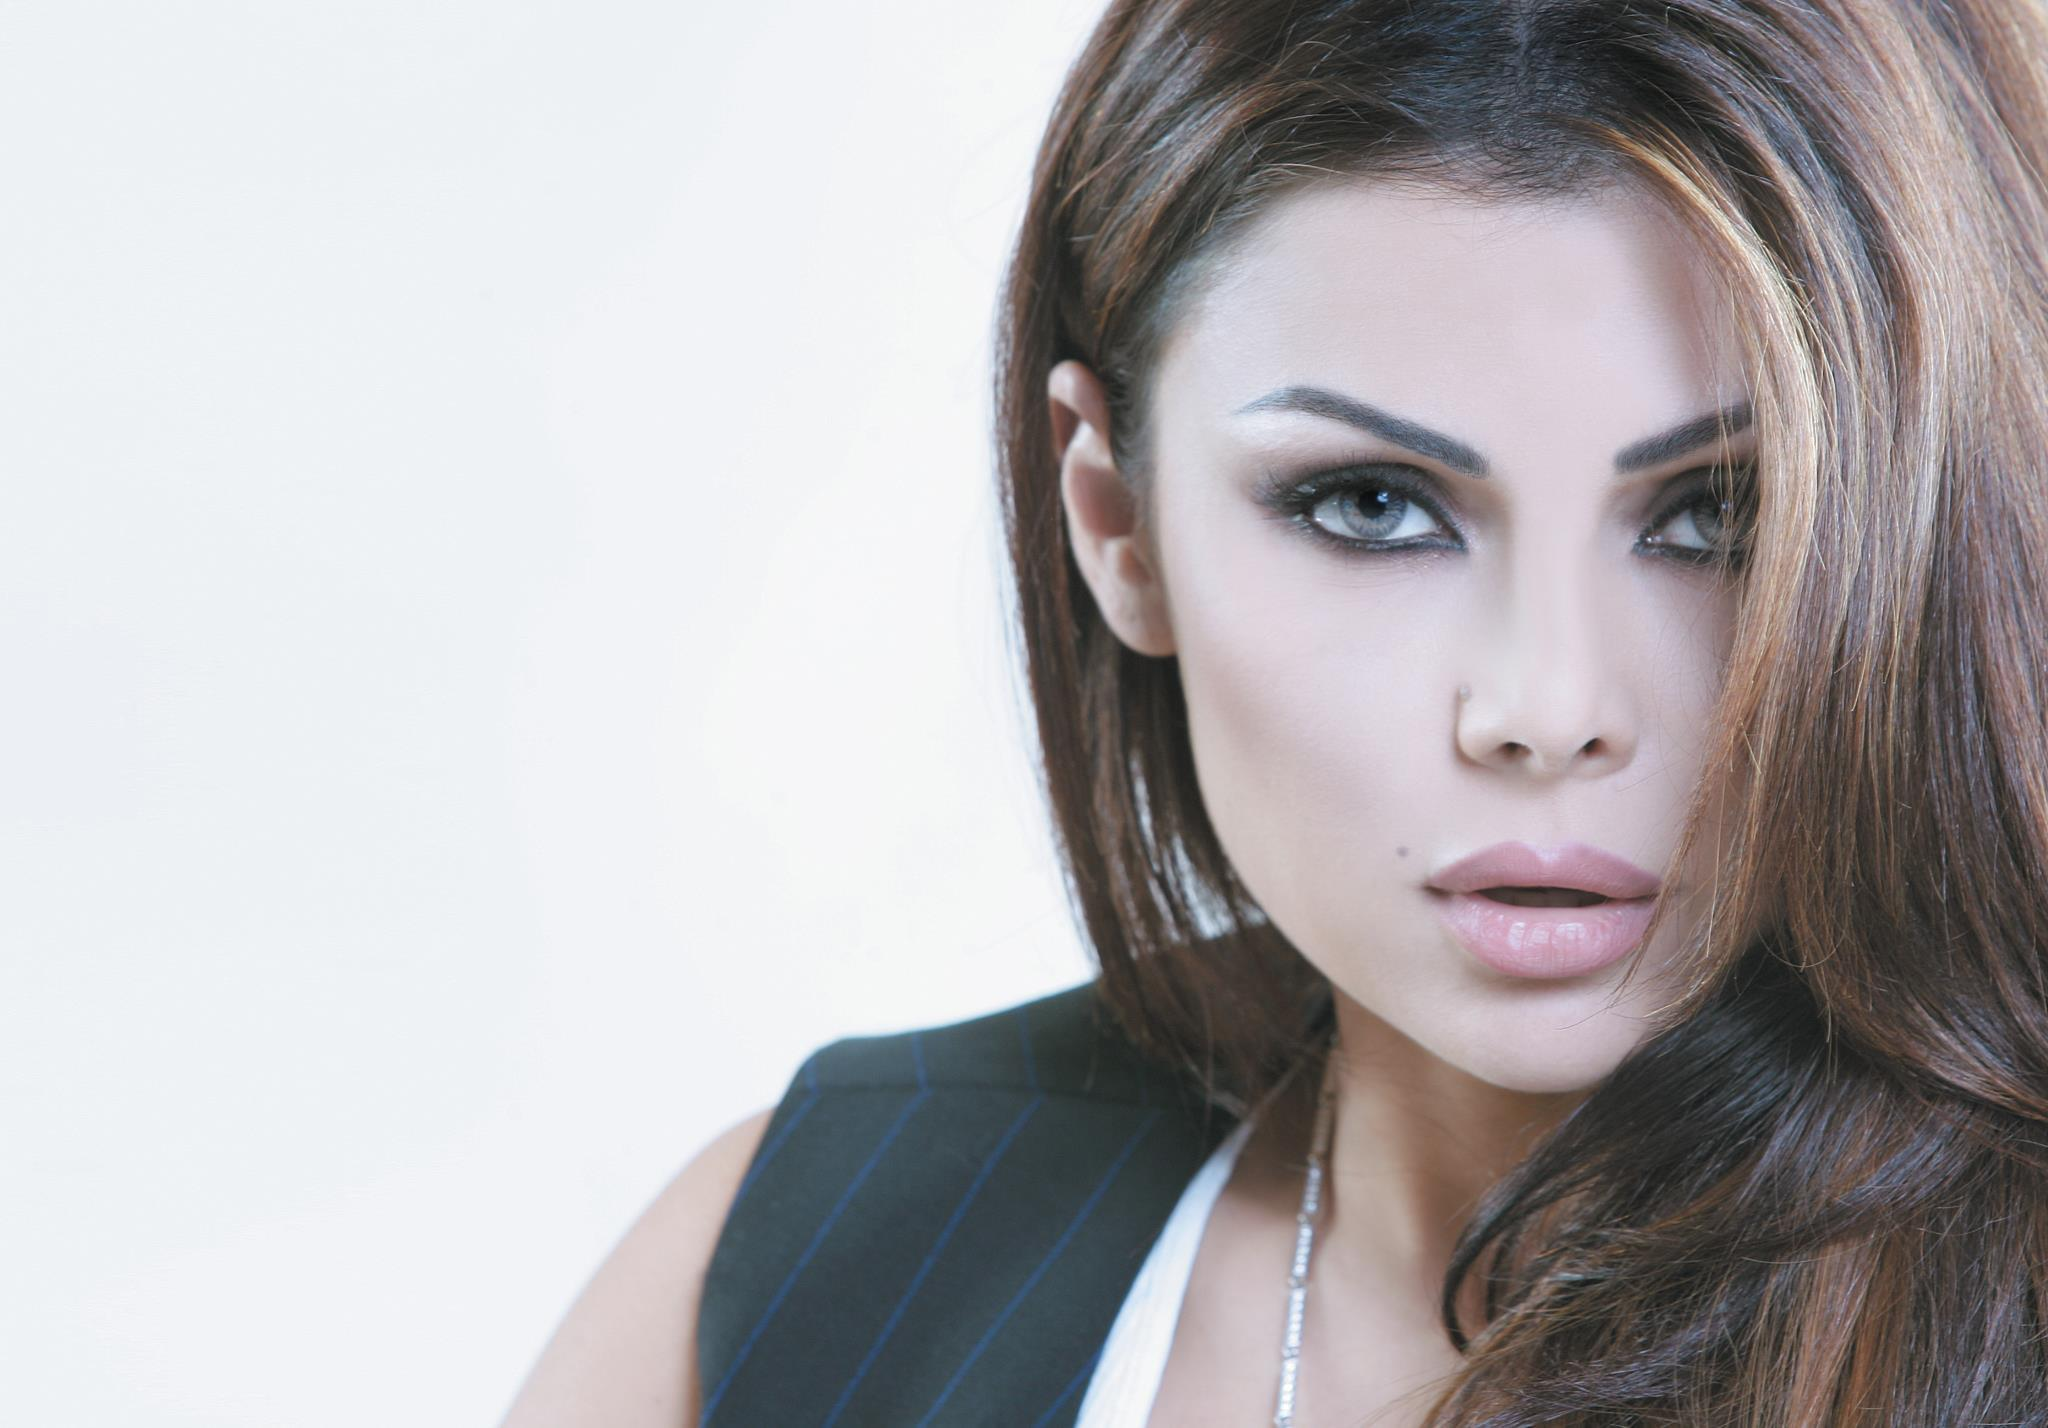 haifa wehbe hd wallpaper 61125